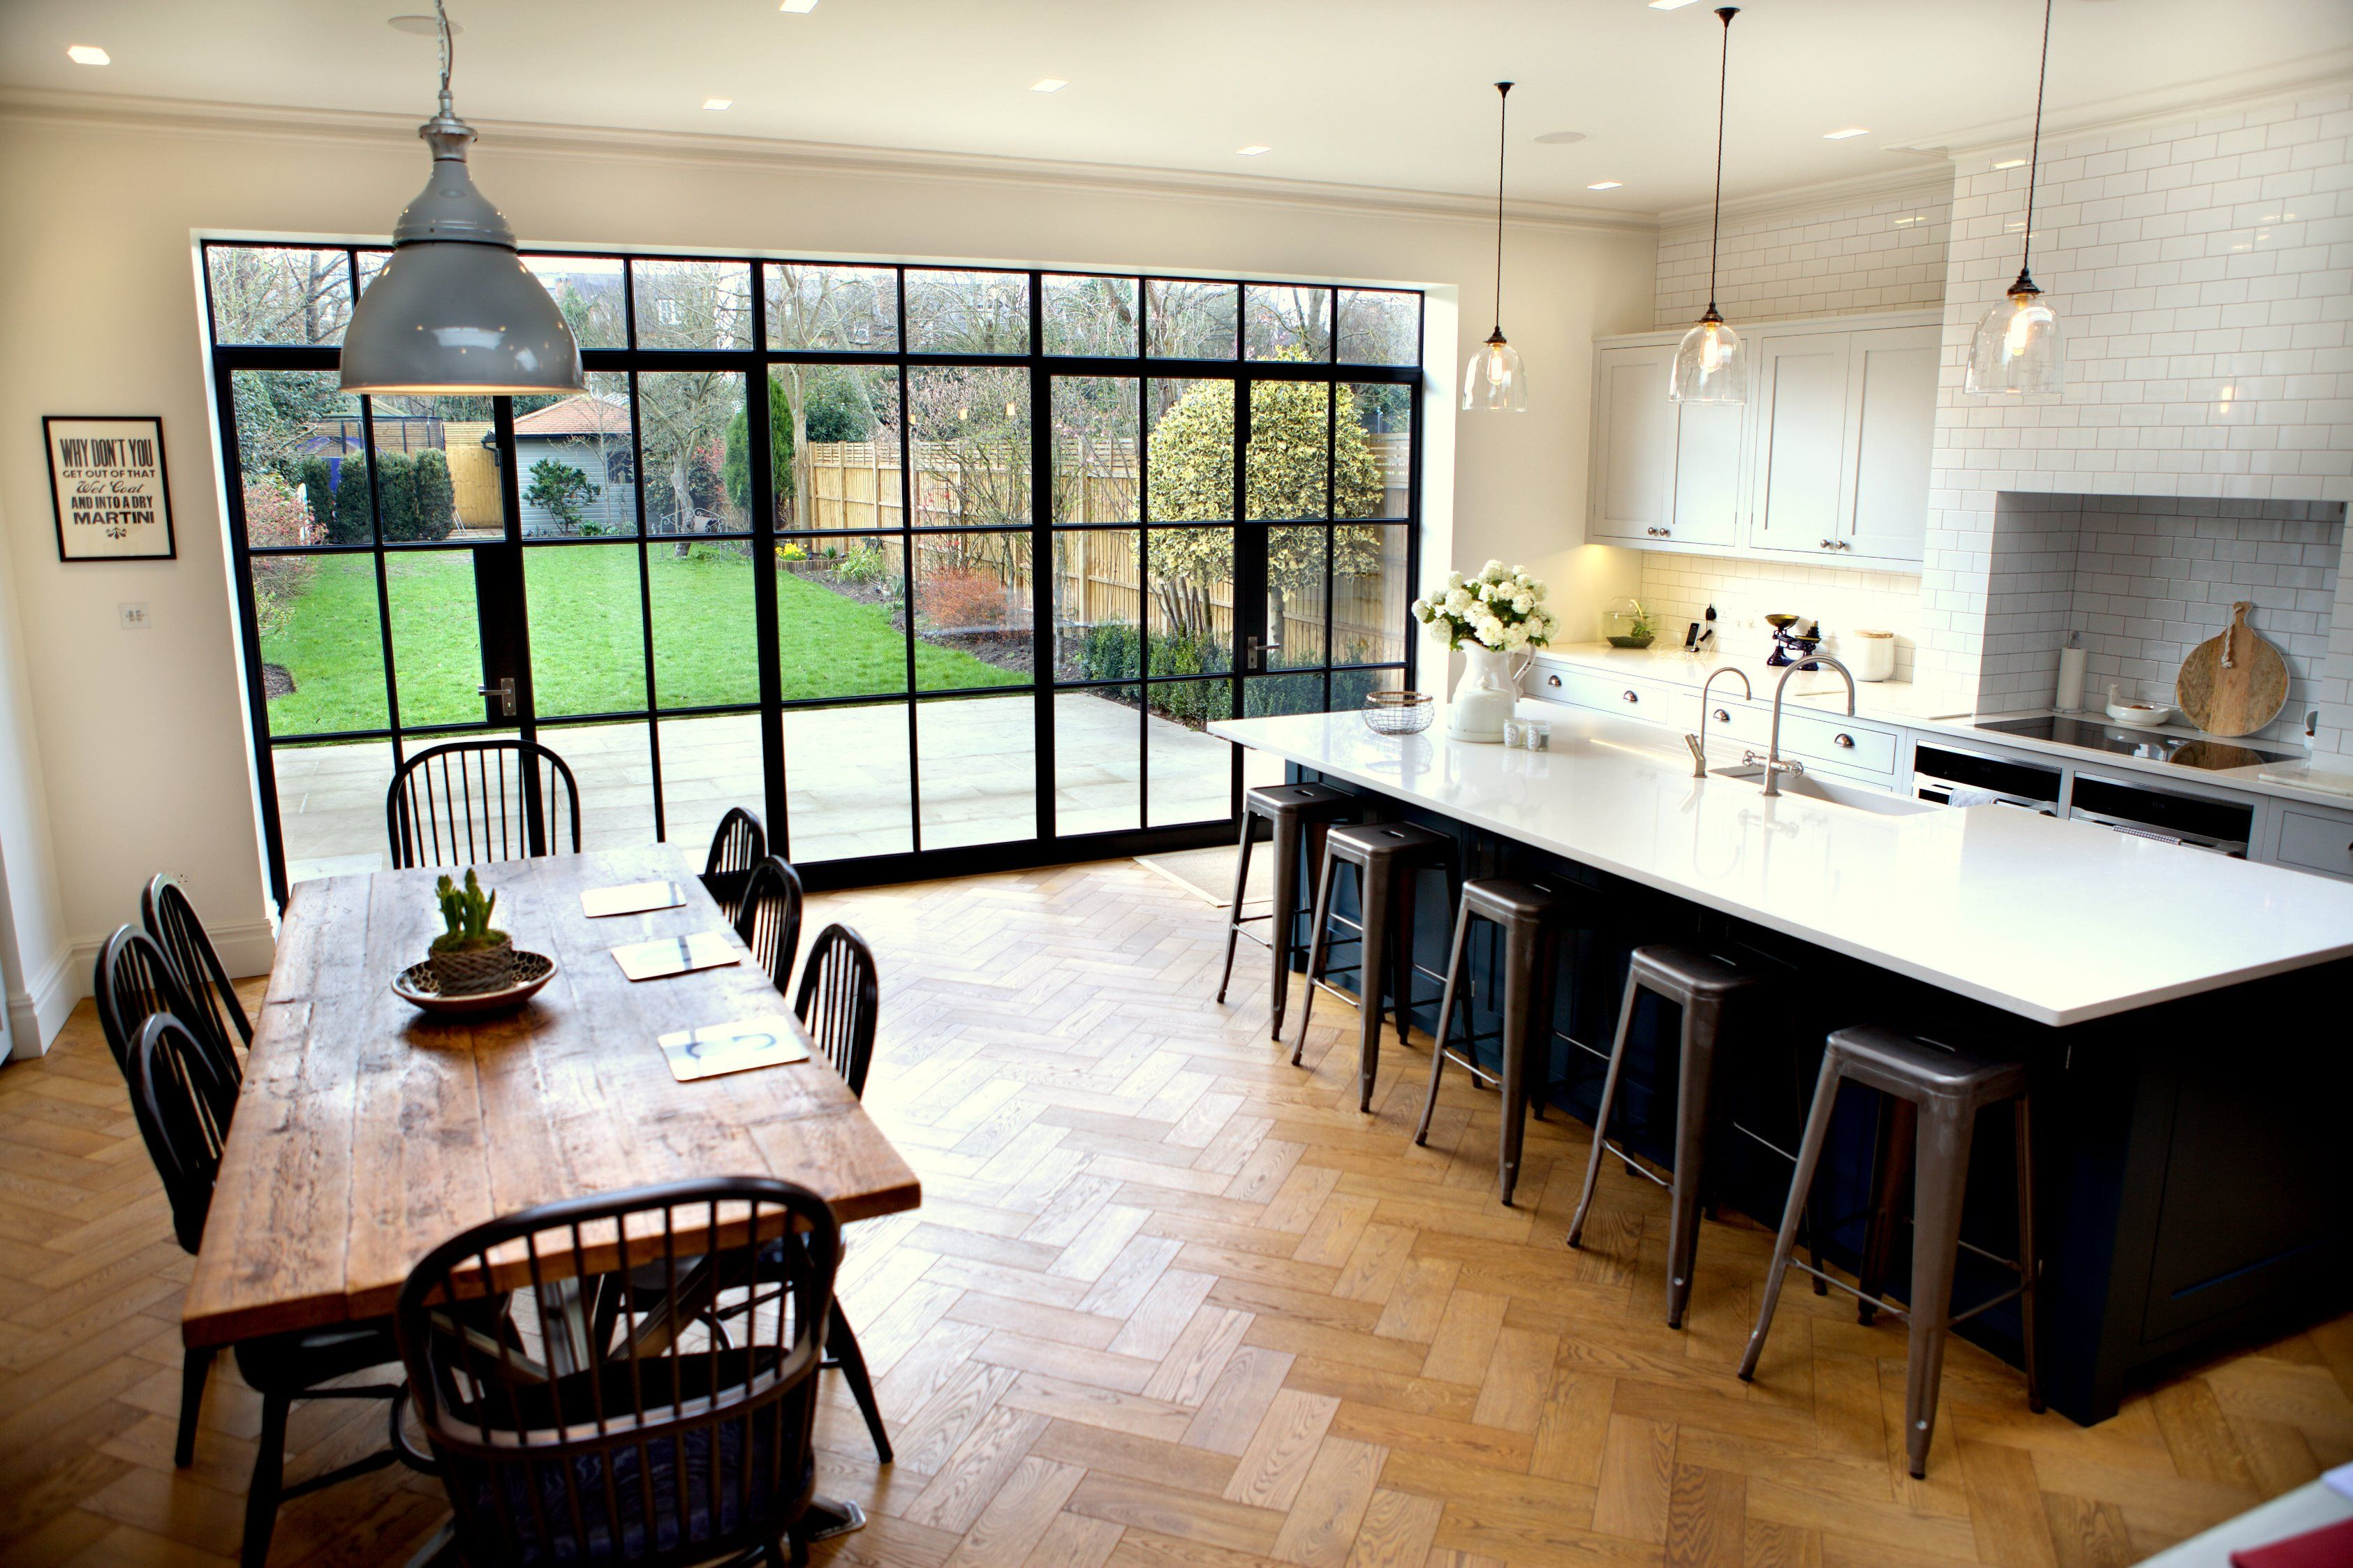 Exceptionnel Keen To Extend Their House In Wandsworth, South West London, To Create A  Large, Light Filled Family Kitchen And Dining Area Opening Directly Onto  The Garden ...